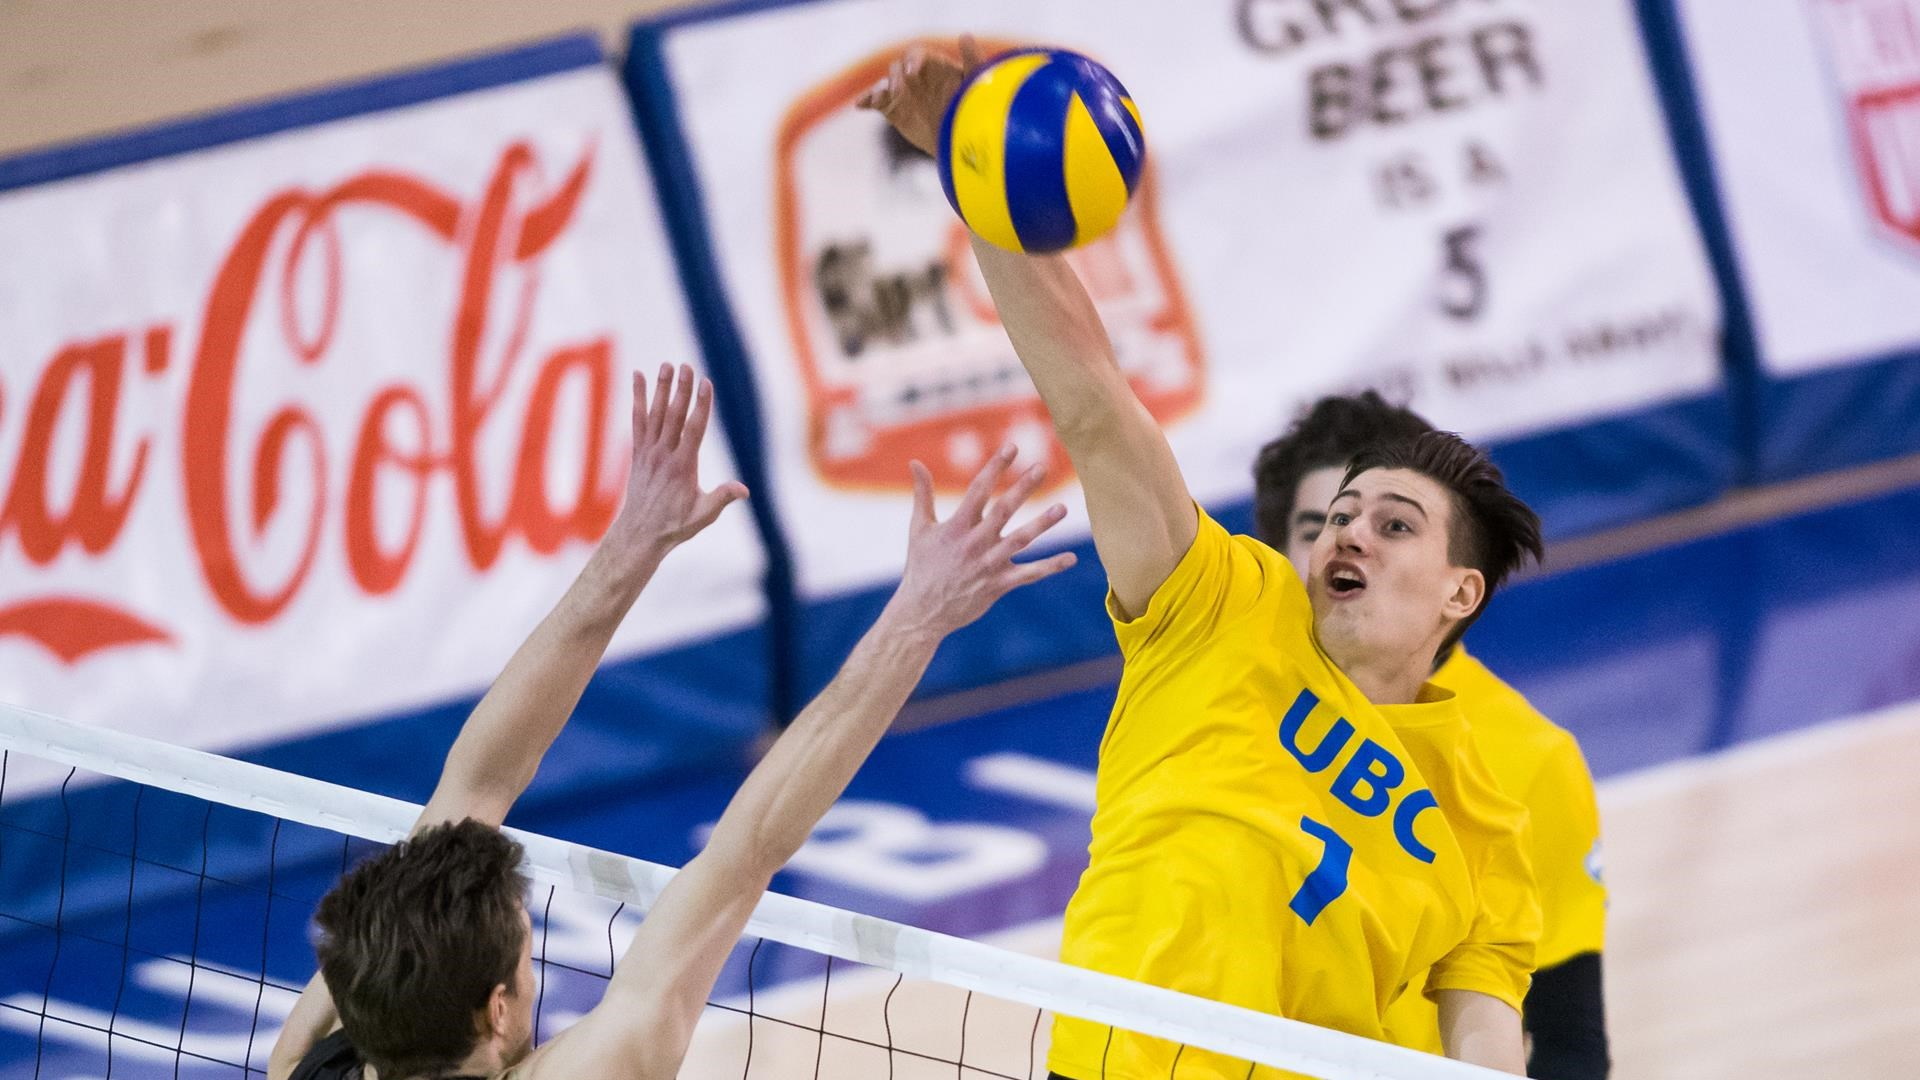 After three years of professional volleyball experience, Keturakis is returning to Canada for the NextGen team from the Netzhoppers in the German Bundesliga.